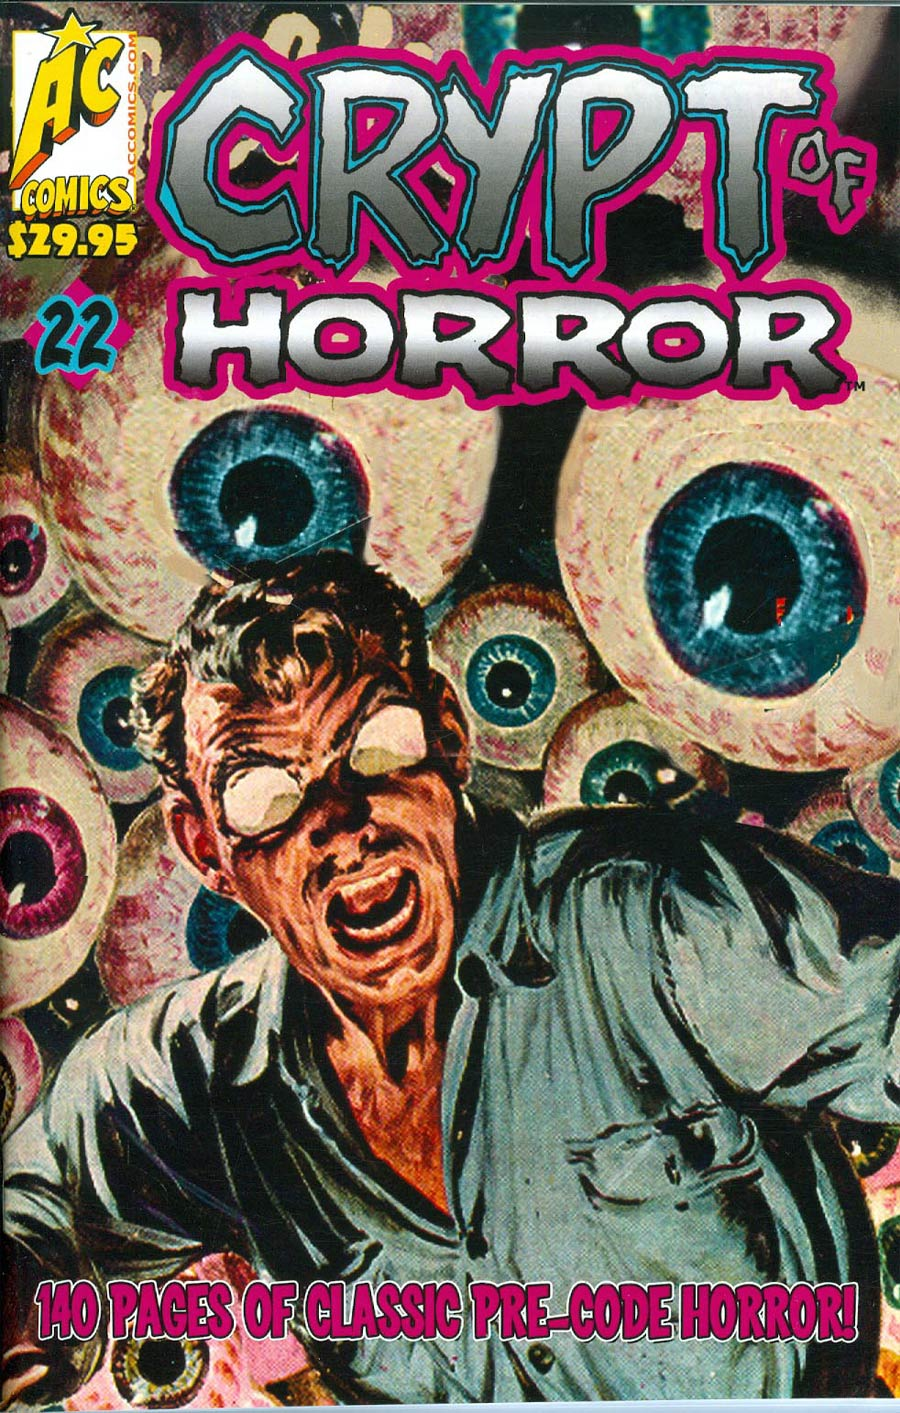 Crypt Of Horror #22